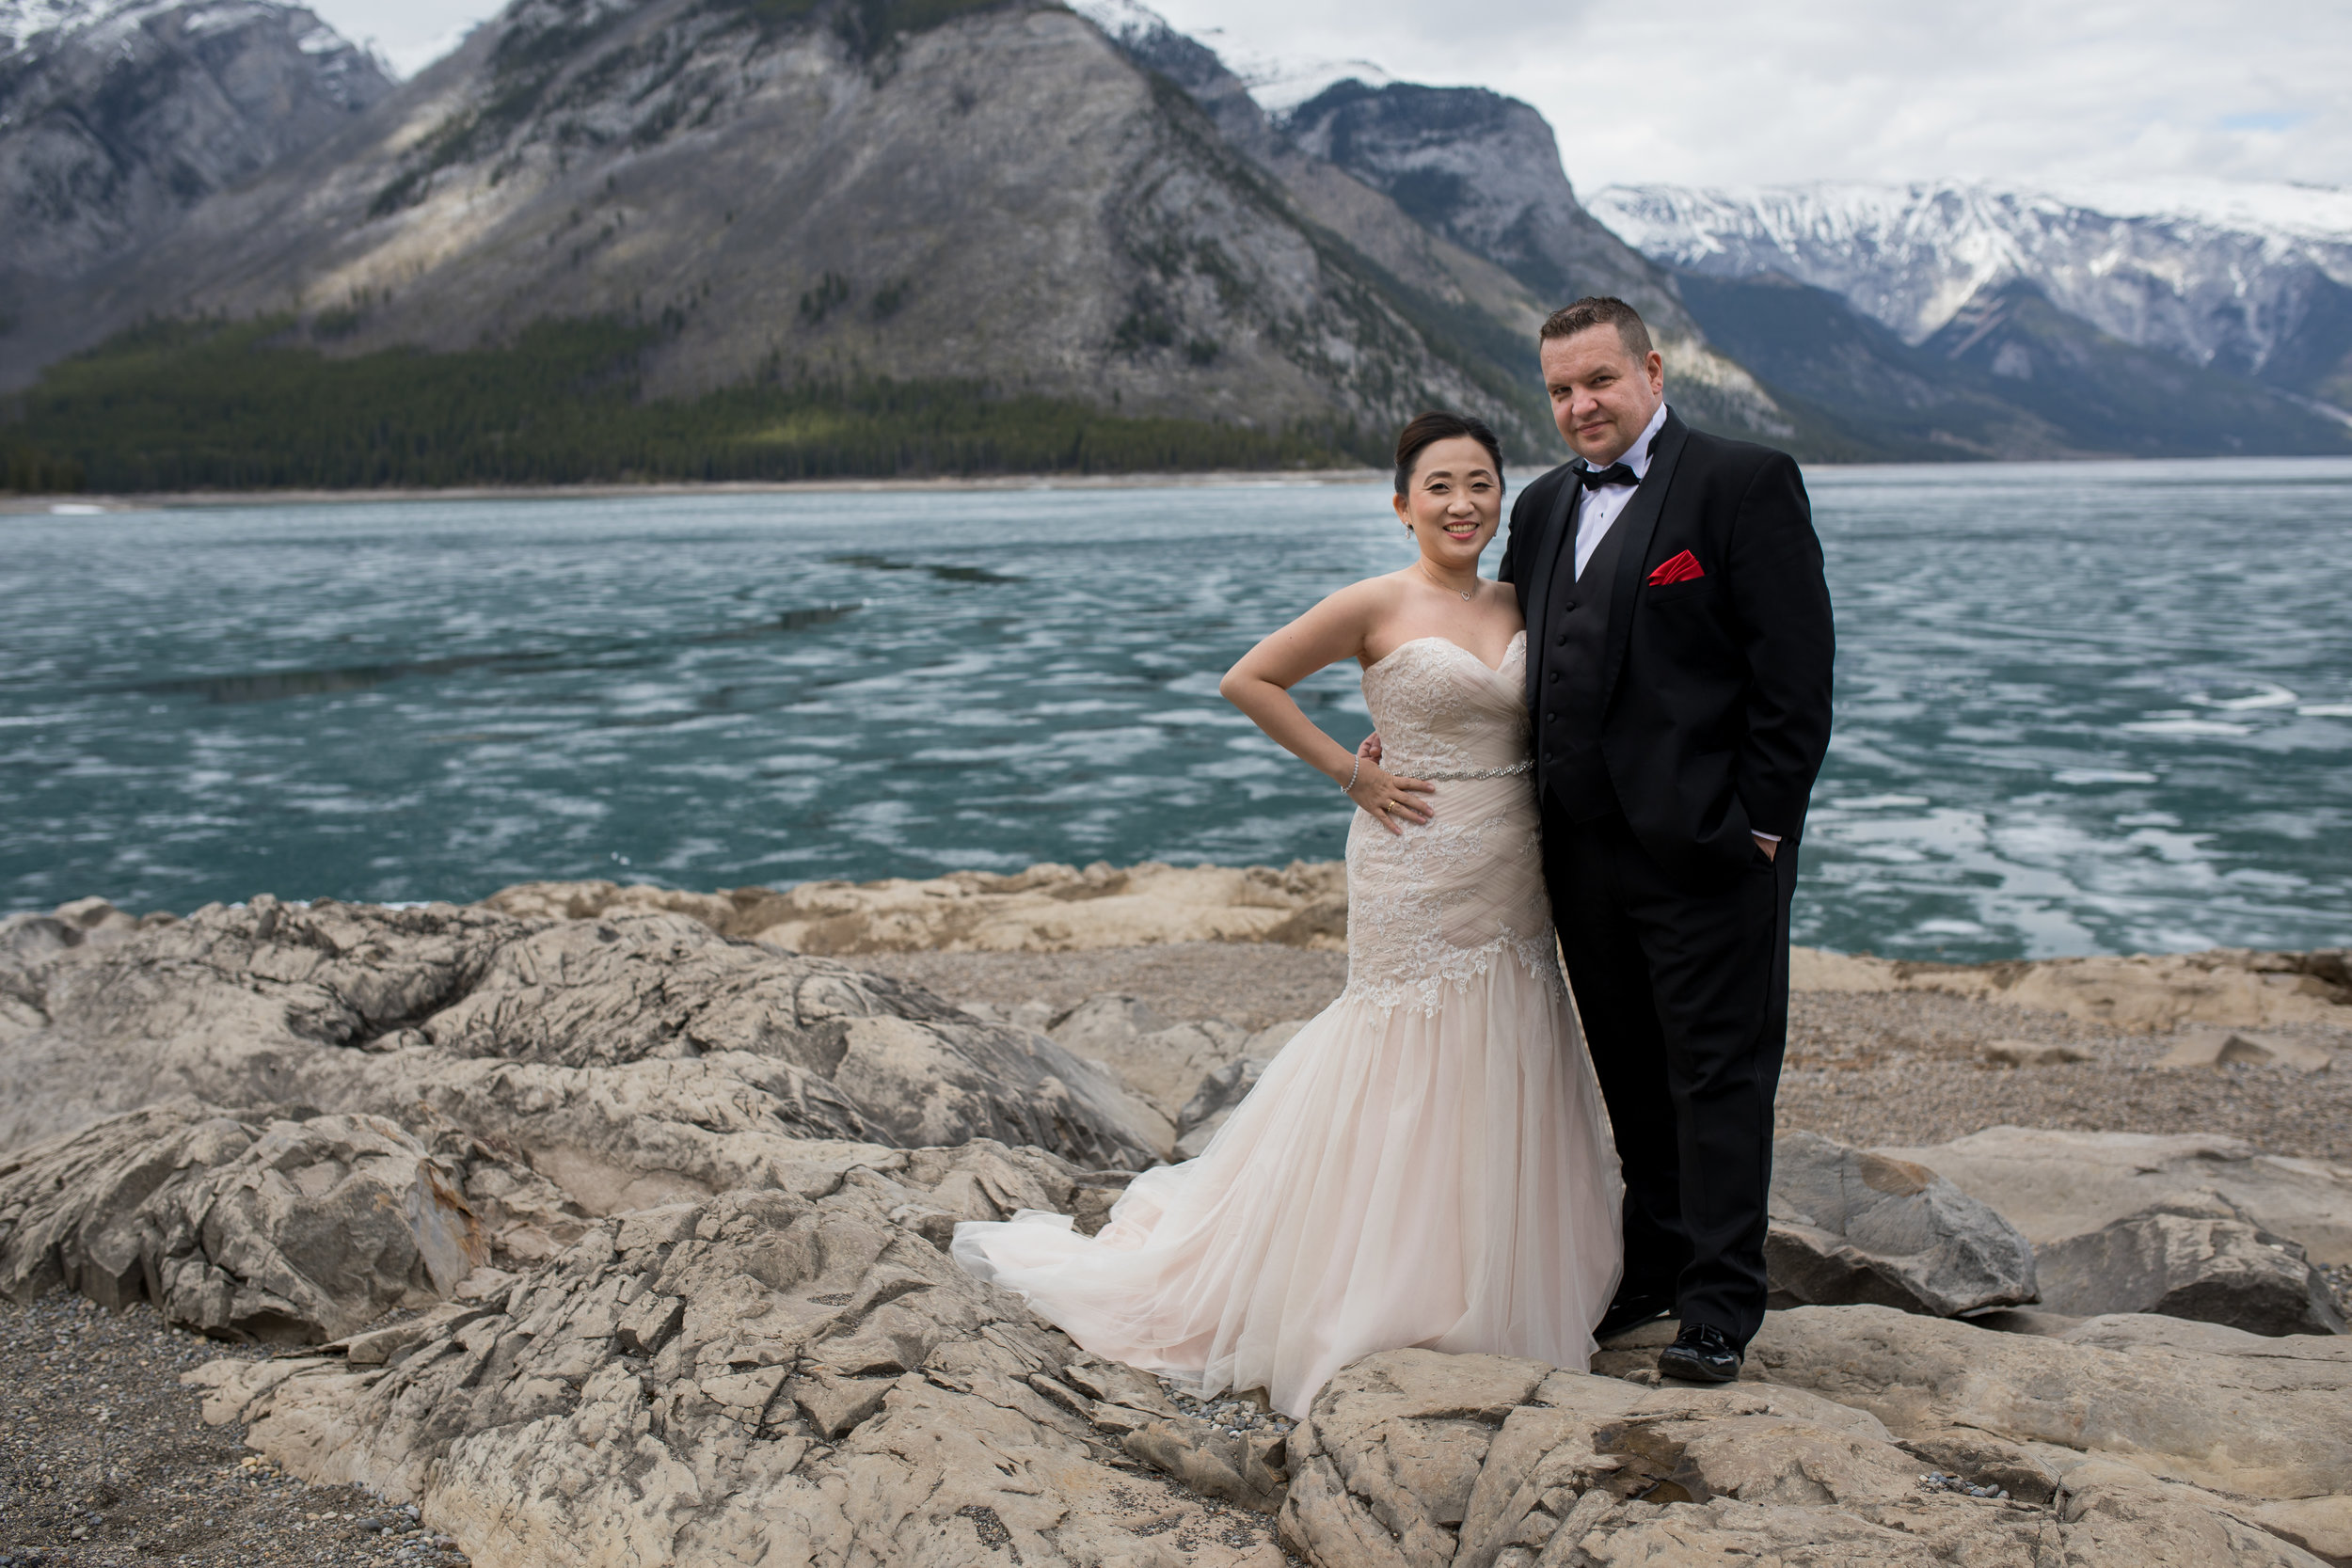 Wedding Photos Banff-Lake Minniwanka